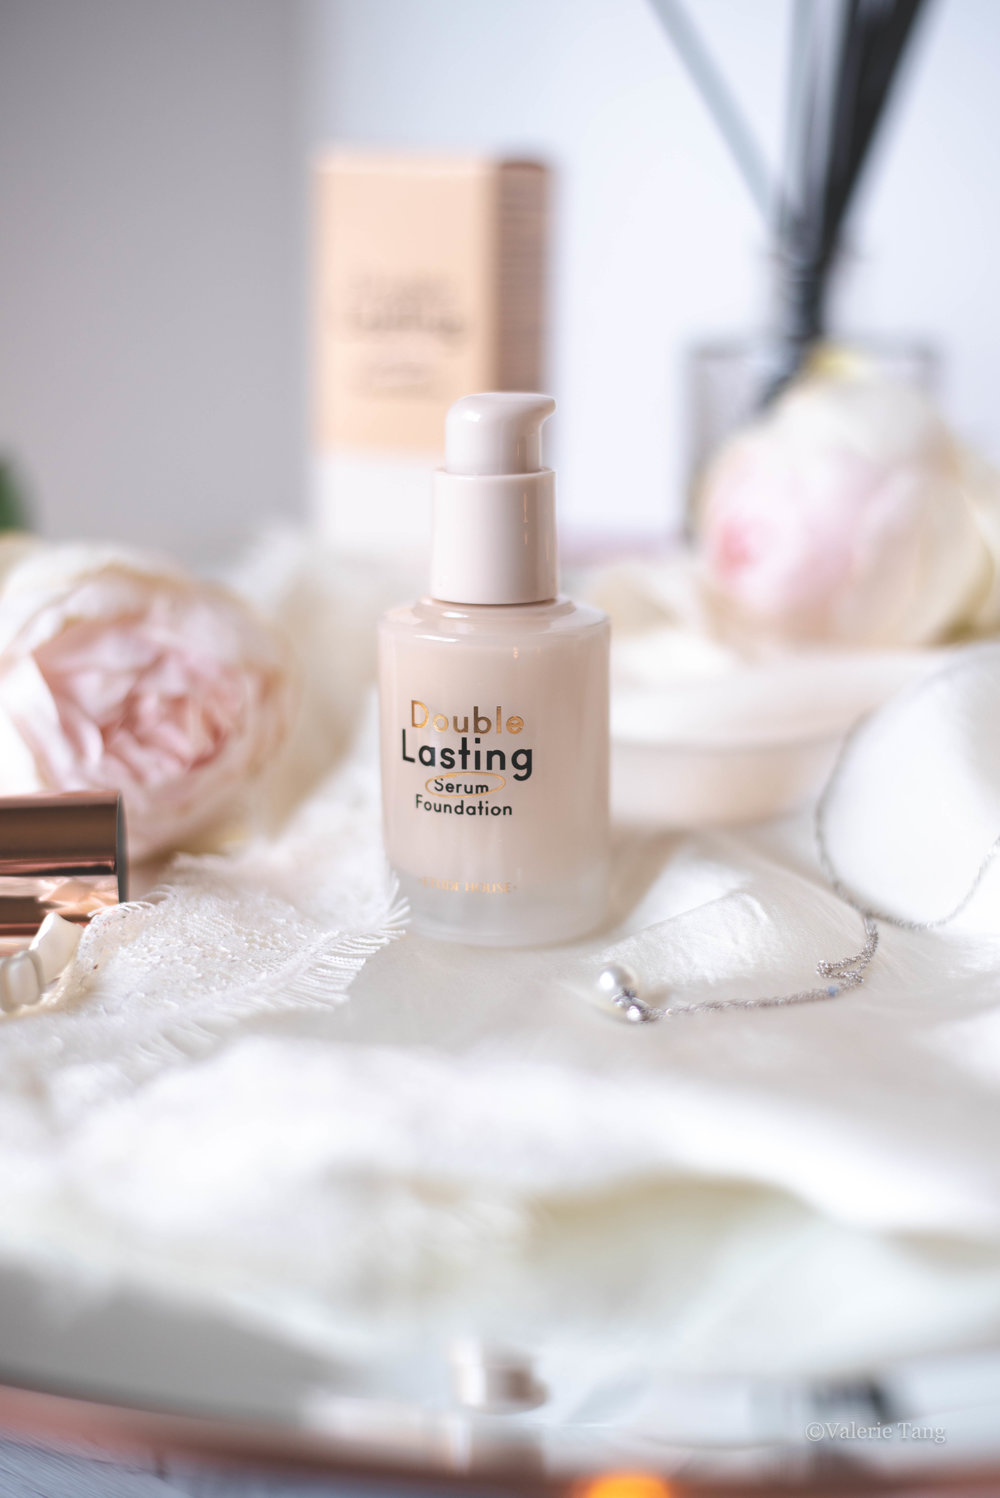 Etude House Double Lasting Serum Foundation Review